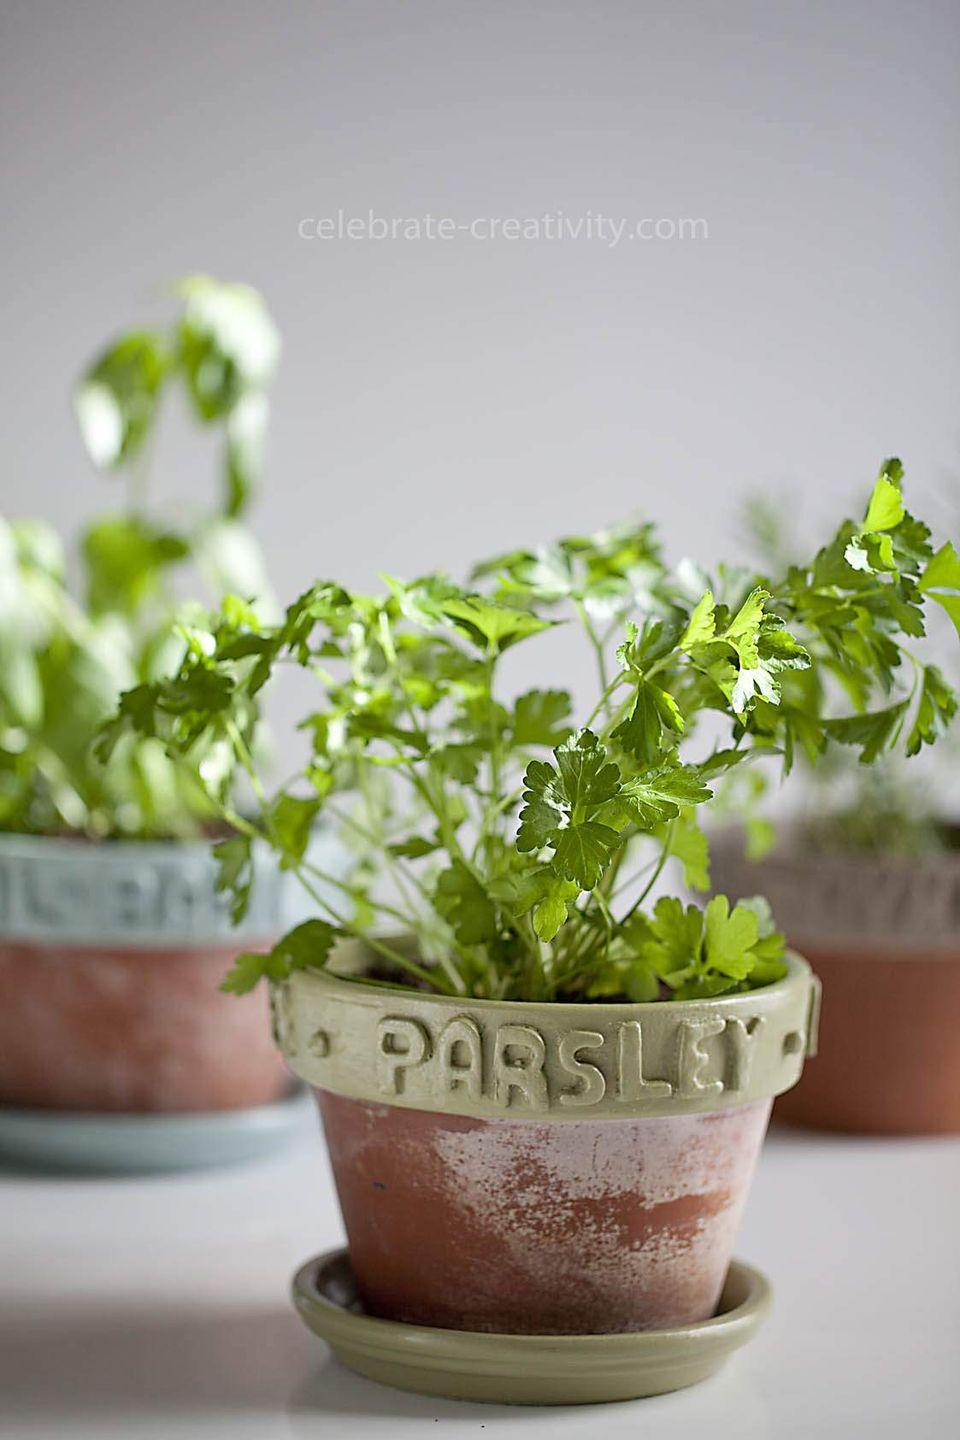 """<p>For the gardener or the cook, a small herb garden, complete with colorful DIY labels makes a great—and very useful—gift. </p><p><a href=""""https://celebrate-creativity.com/my_weblog/2015/07/herb-potts-with-diy-clay-labels.html"""" rel=""""nofollow noopener"""" target=""""_blank"""" data-ylk=""""slk:Get the tutorial."""" class=""""link rapid-noclick-resp"""">Get the tutorial.</a></p><p><a class=""""link rapid-noclick-resp"""" href=""""https://www.amazon.com/CiaraQ-Polymer-Conformed-Non-Toxic-Beginners/dp/B089Y7GB97?tag=syn-yahoo-20&ascsubtag=%5Bartid%7C10072.g.27603456%5Bsrc%7Cyahoo-us"""" rel=""""nofollow noopener"""" target=""""_blank"""" data-ylk=""""slk:SHOP CLAY"""">SHOP CLAY</a></p>"""